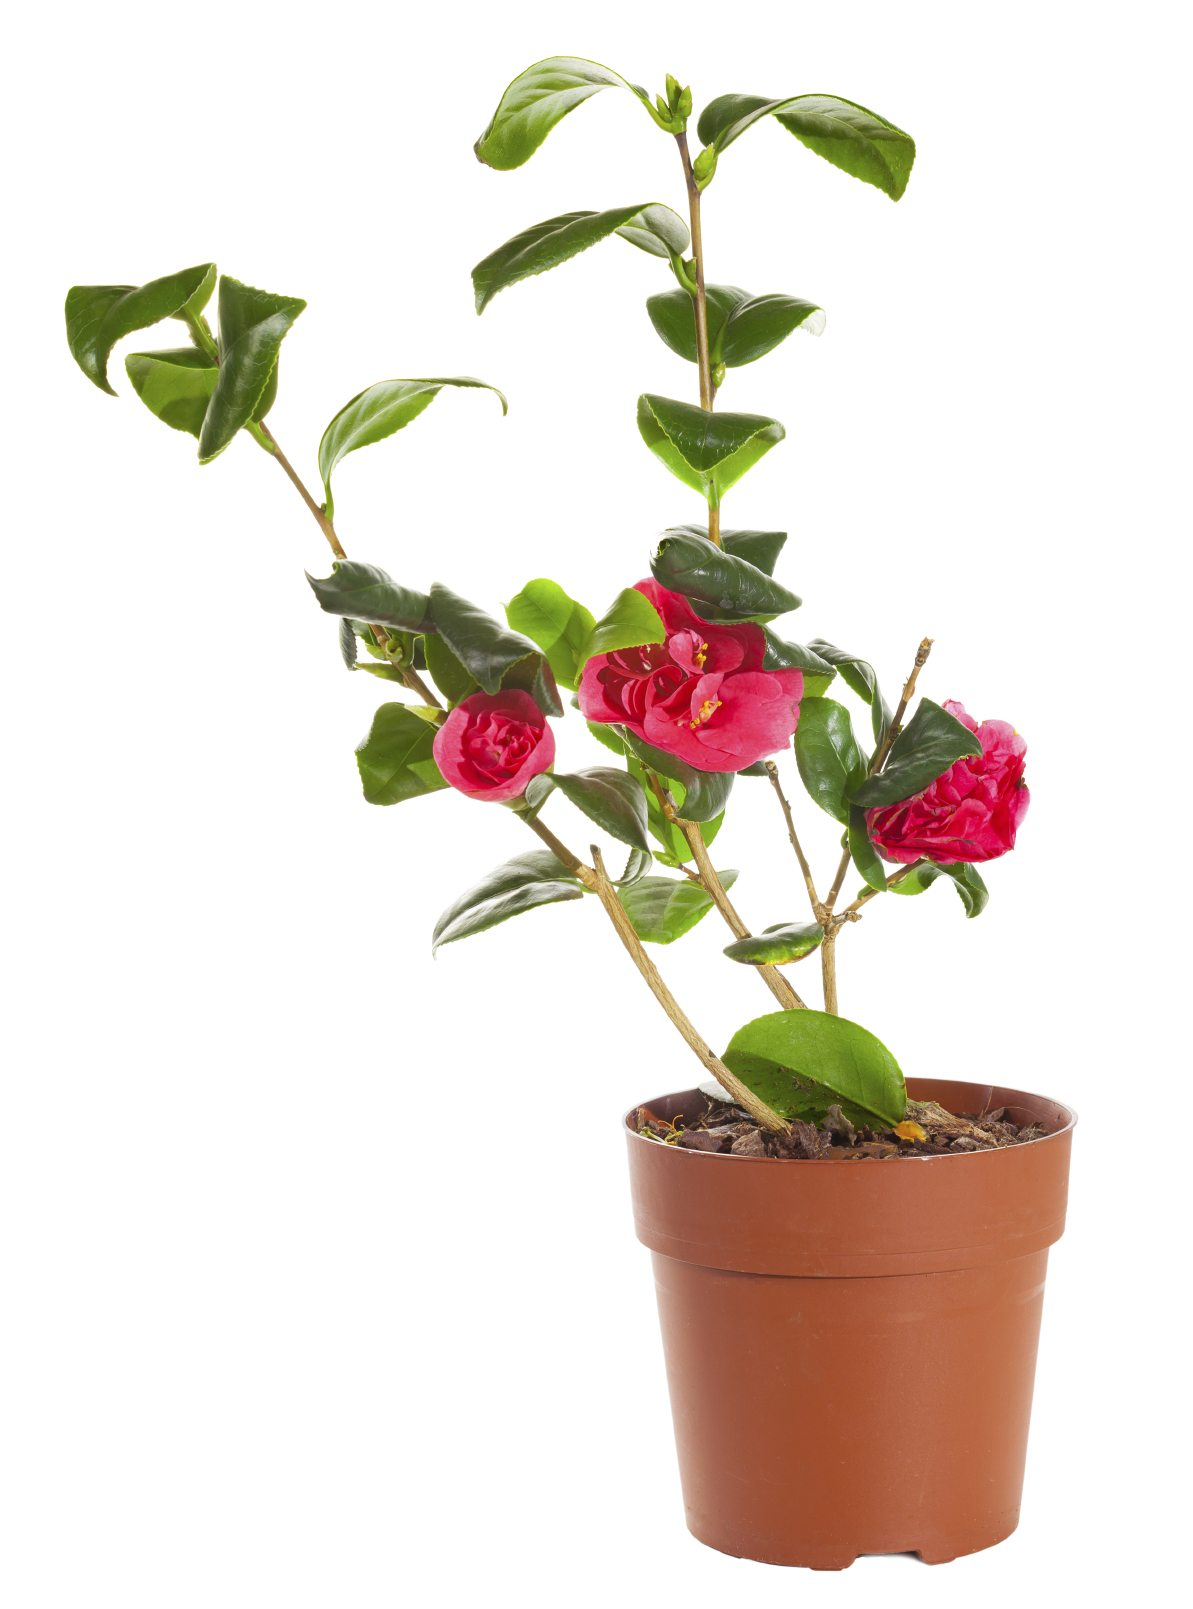 Forum on this topic: How to Care for Camellias, how-to-care-for-camellias/